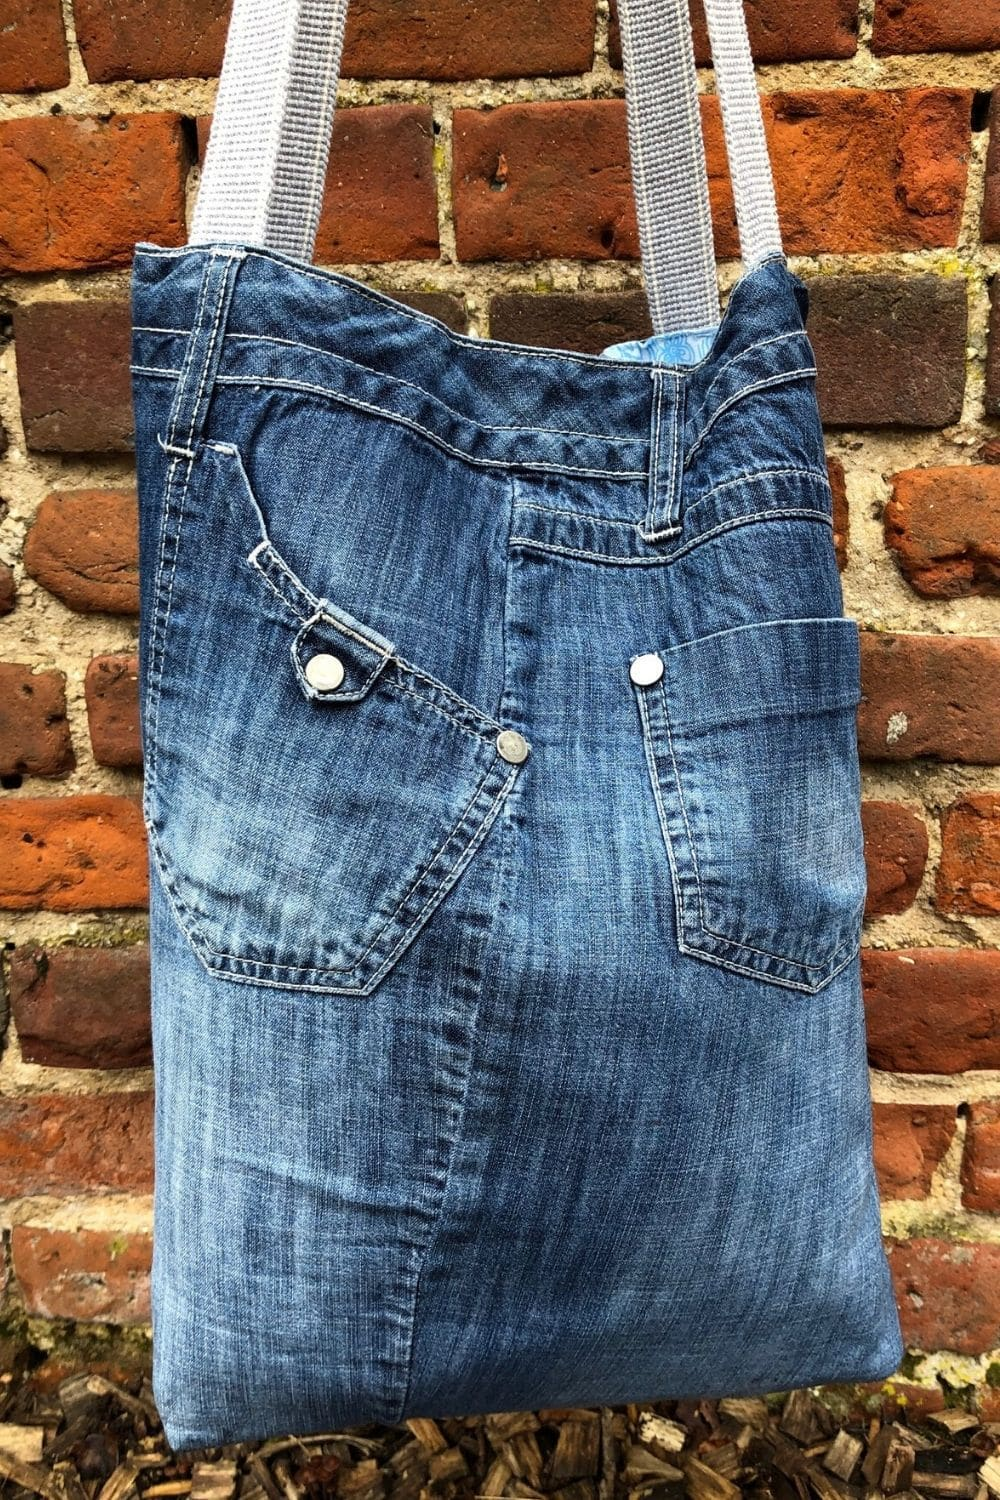 Making bags out of old jeans is super fun. Learn how with this quick and easy recycled denim bags pattern with video